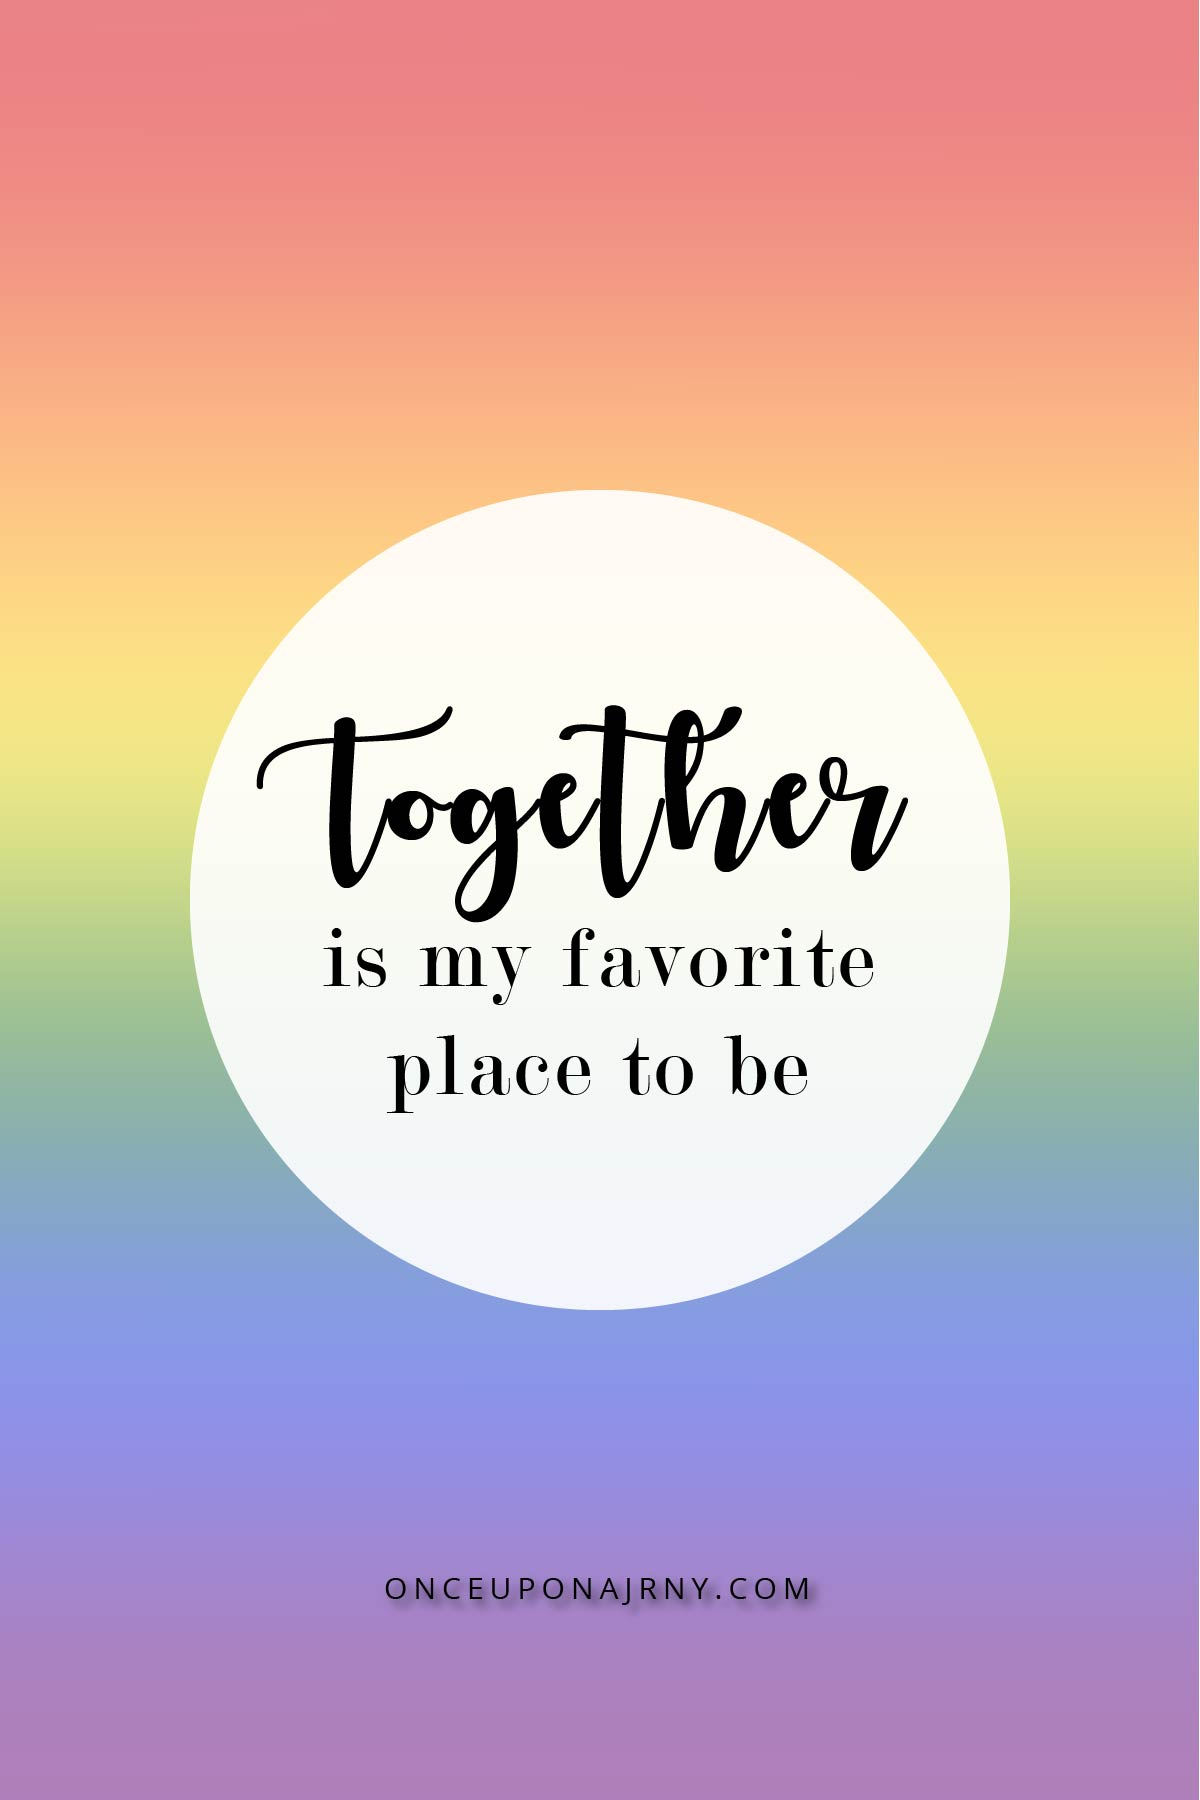 Together is my favorite place to be rainbow lgbtq quotes